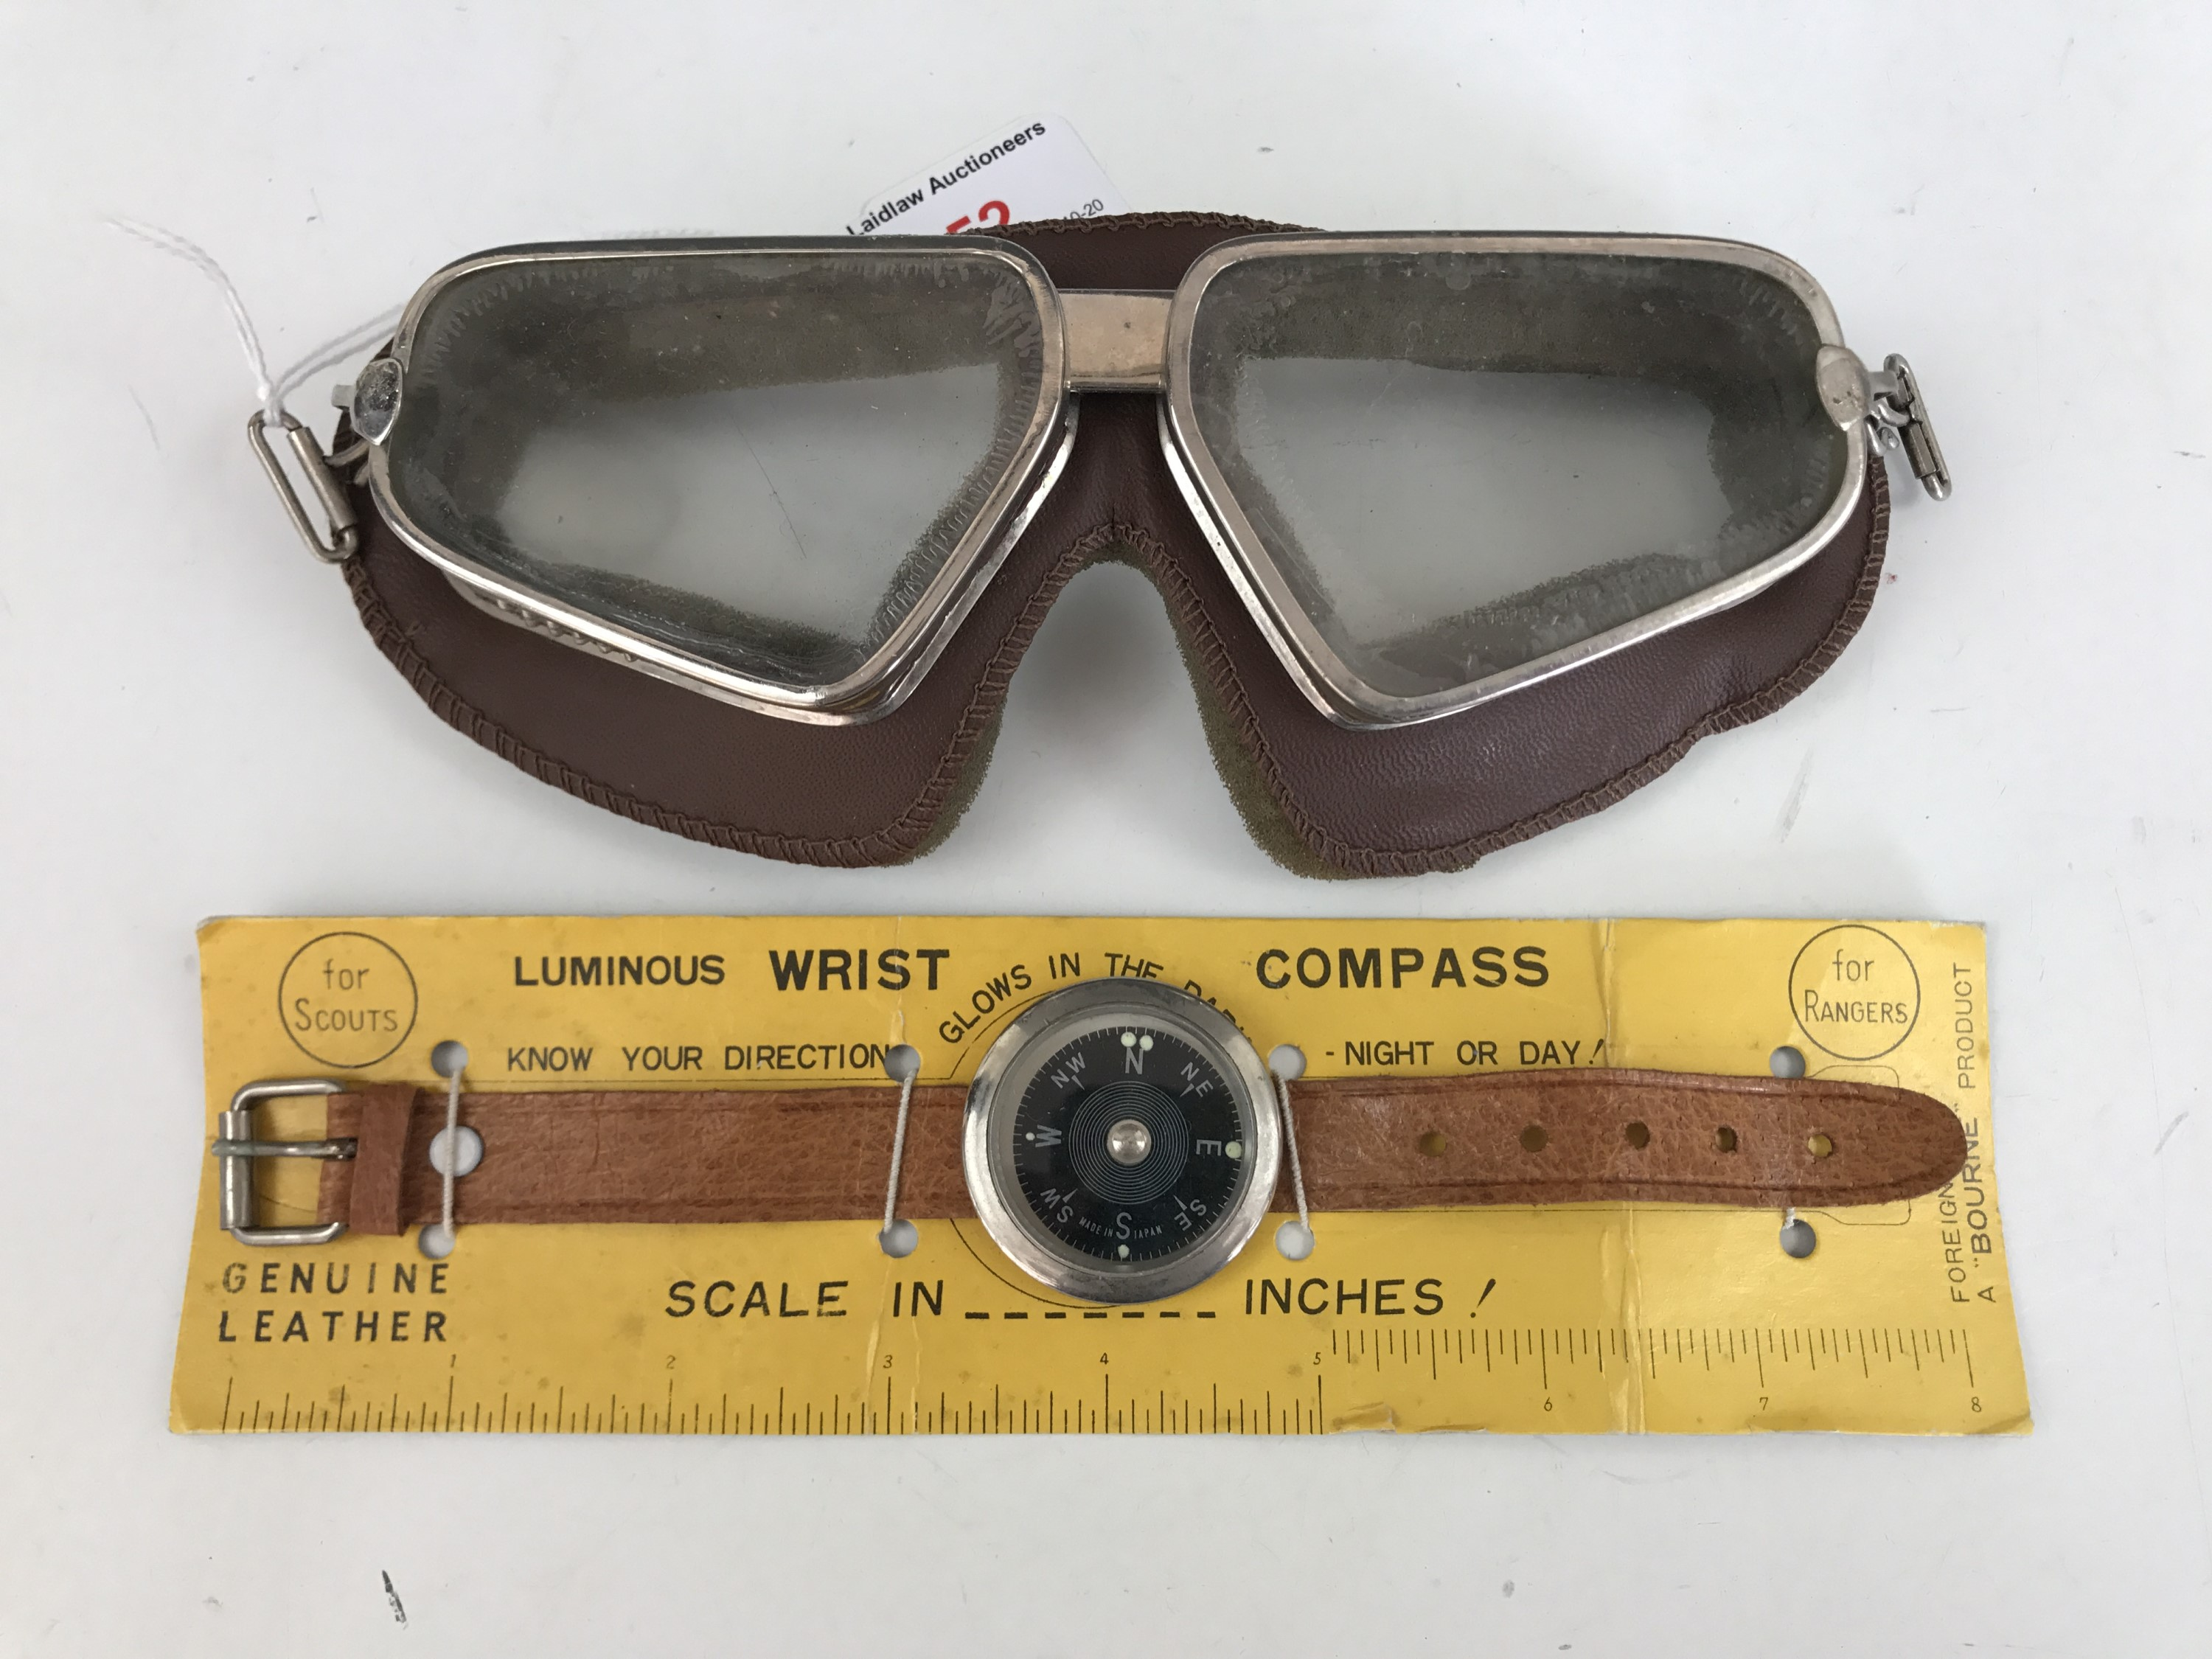 Lot 52 - A set of vintage flying / driving goggles and a luminous wrist compass on original packaging